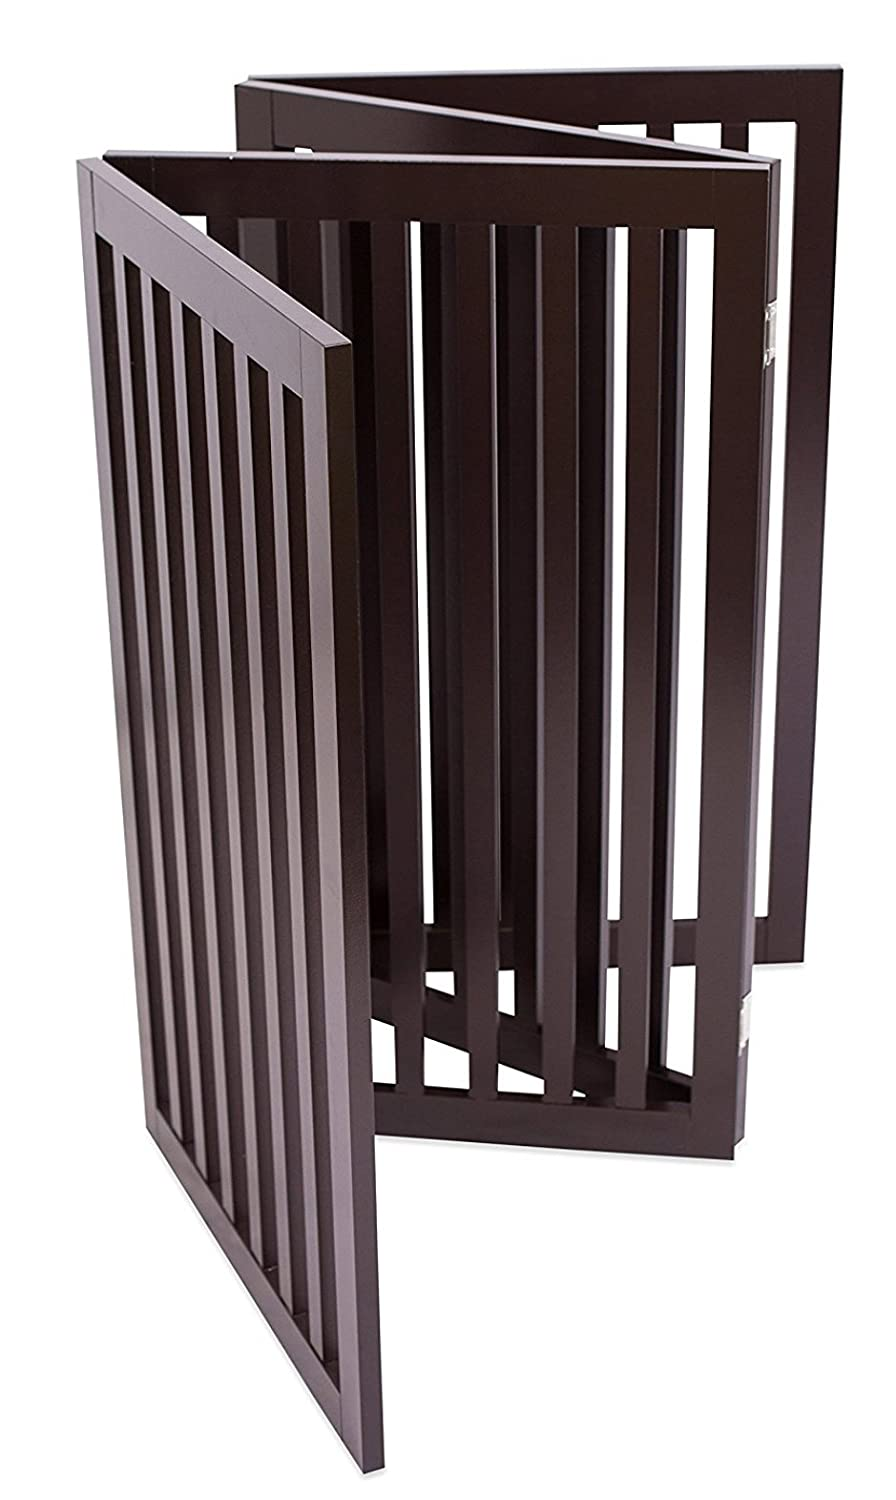 Dog Gate for Dogs Pet Indoor Collapsible Puppy Durable Solid Wood 4 Separate Panels Z-shape Pets Securely Confined Mega Sales Stores